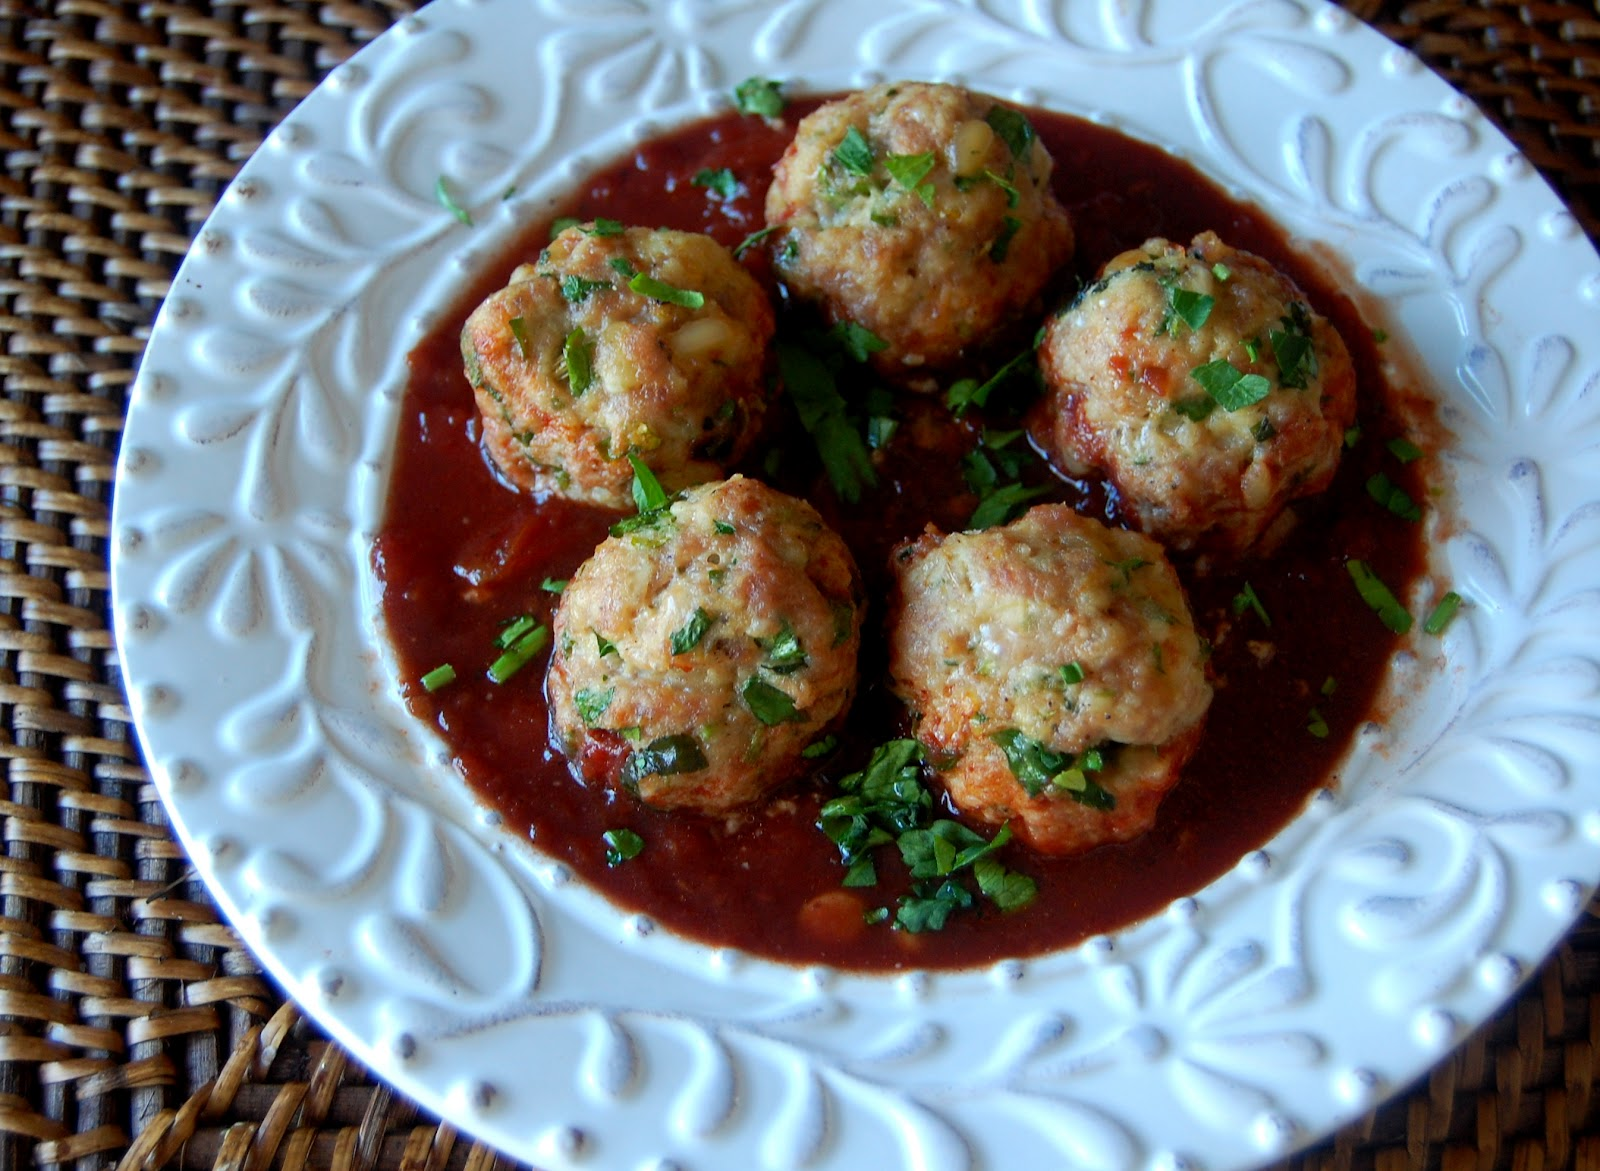 Blogging Foods: Turkey Meatballs with Tomato-Wine Sauce